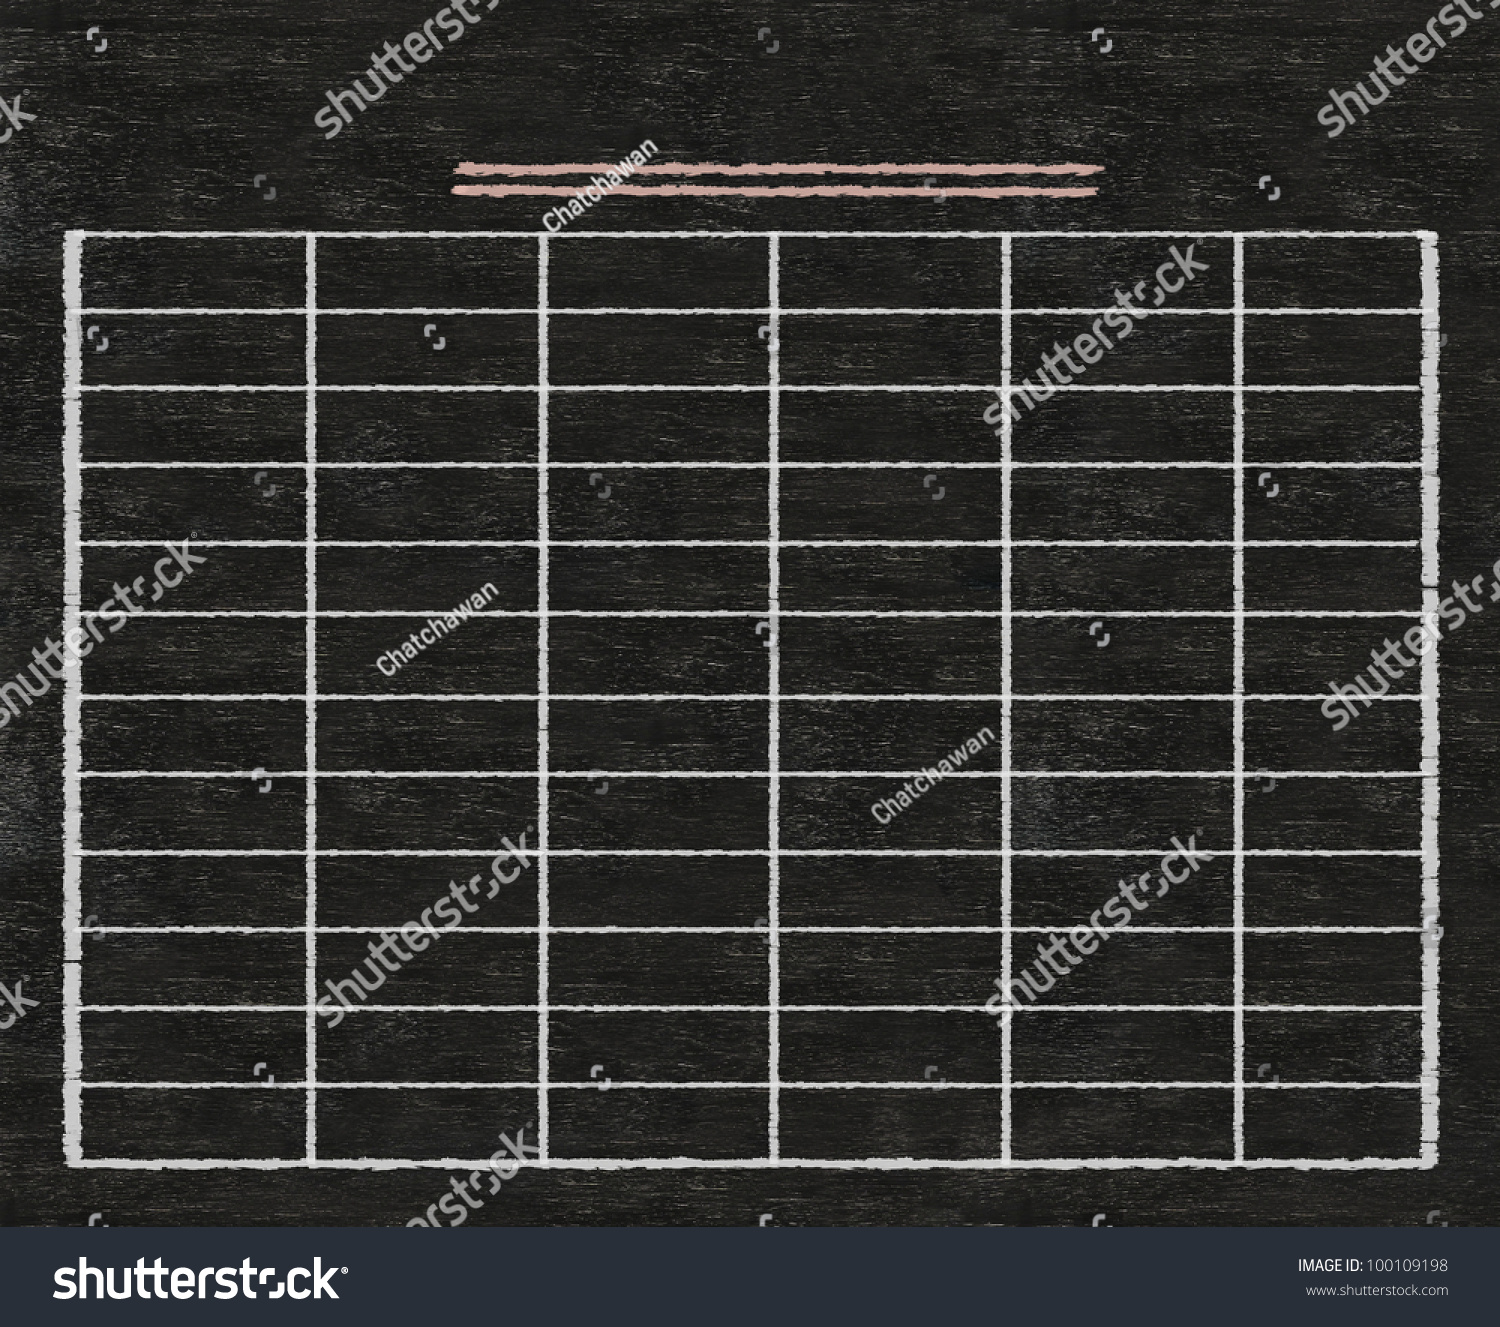 hight resolution of blank table written on blackboard background high resolution